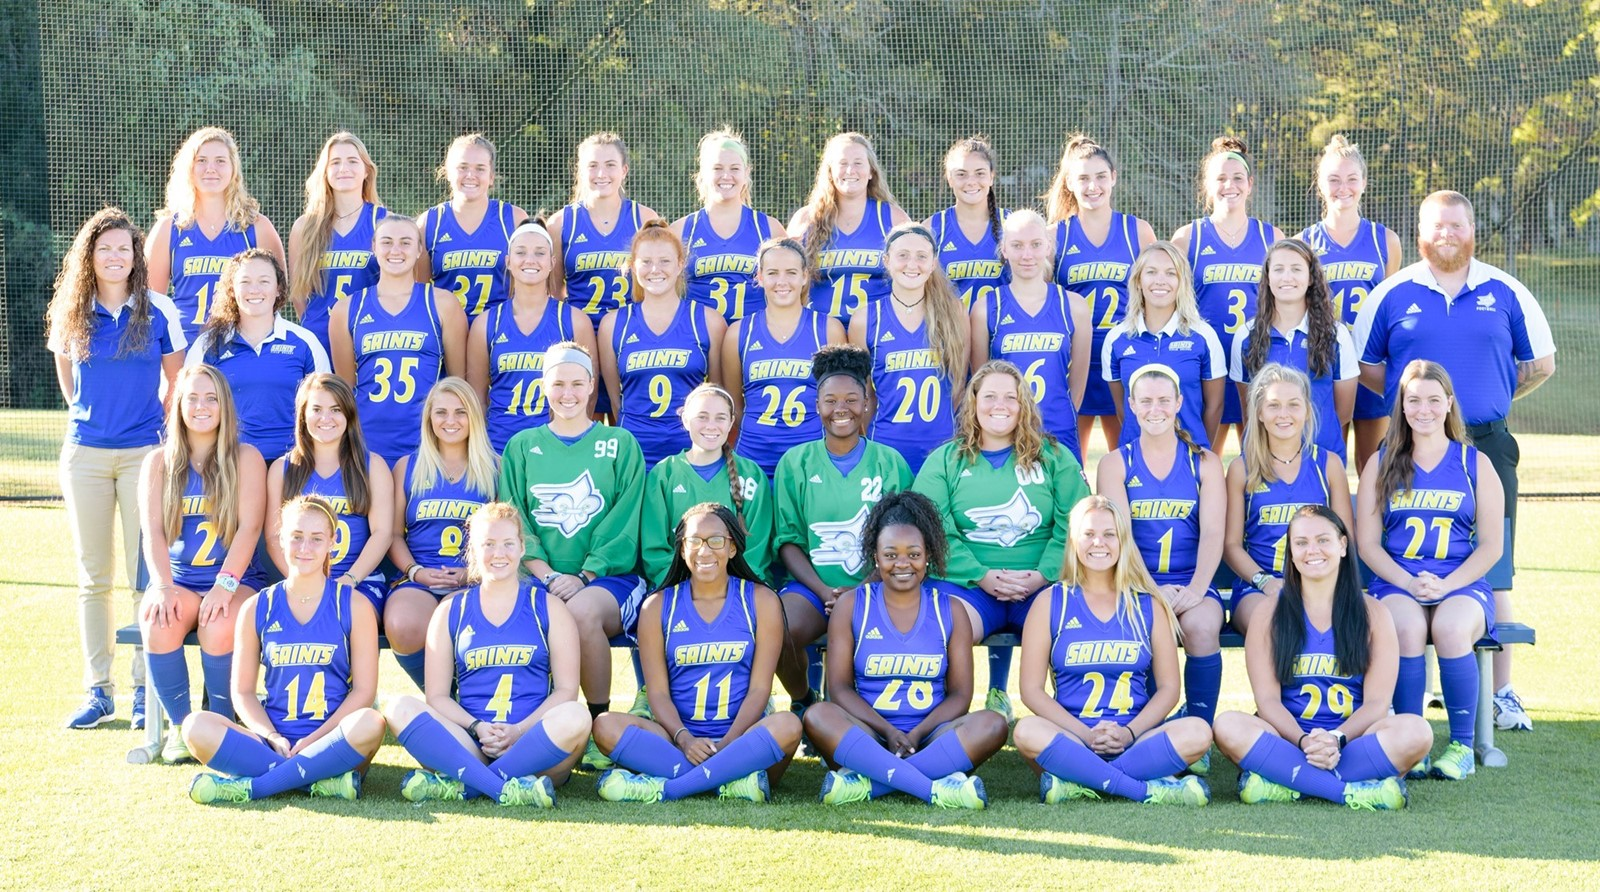 2016 Field Hockey Roster - Limestone College Athletics